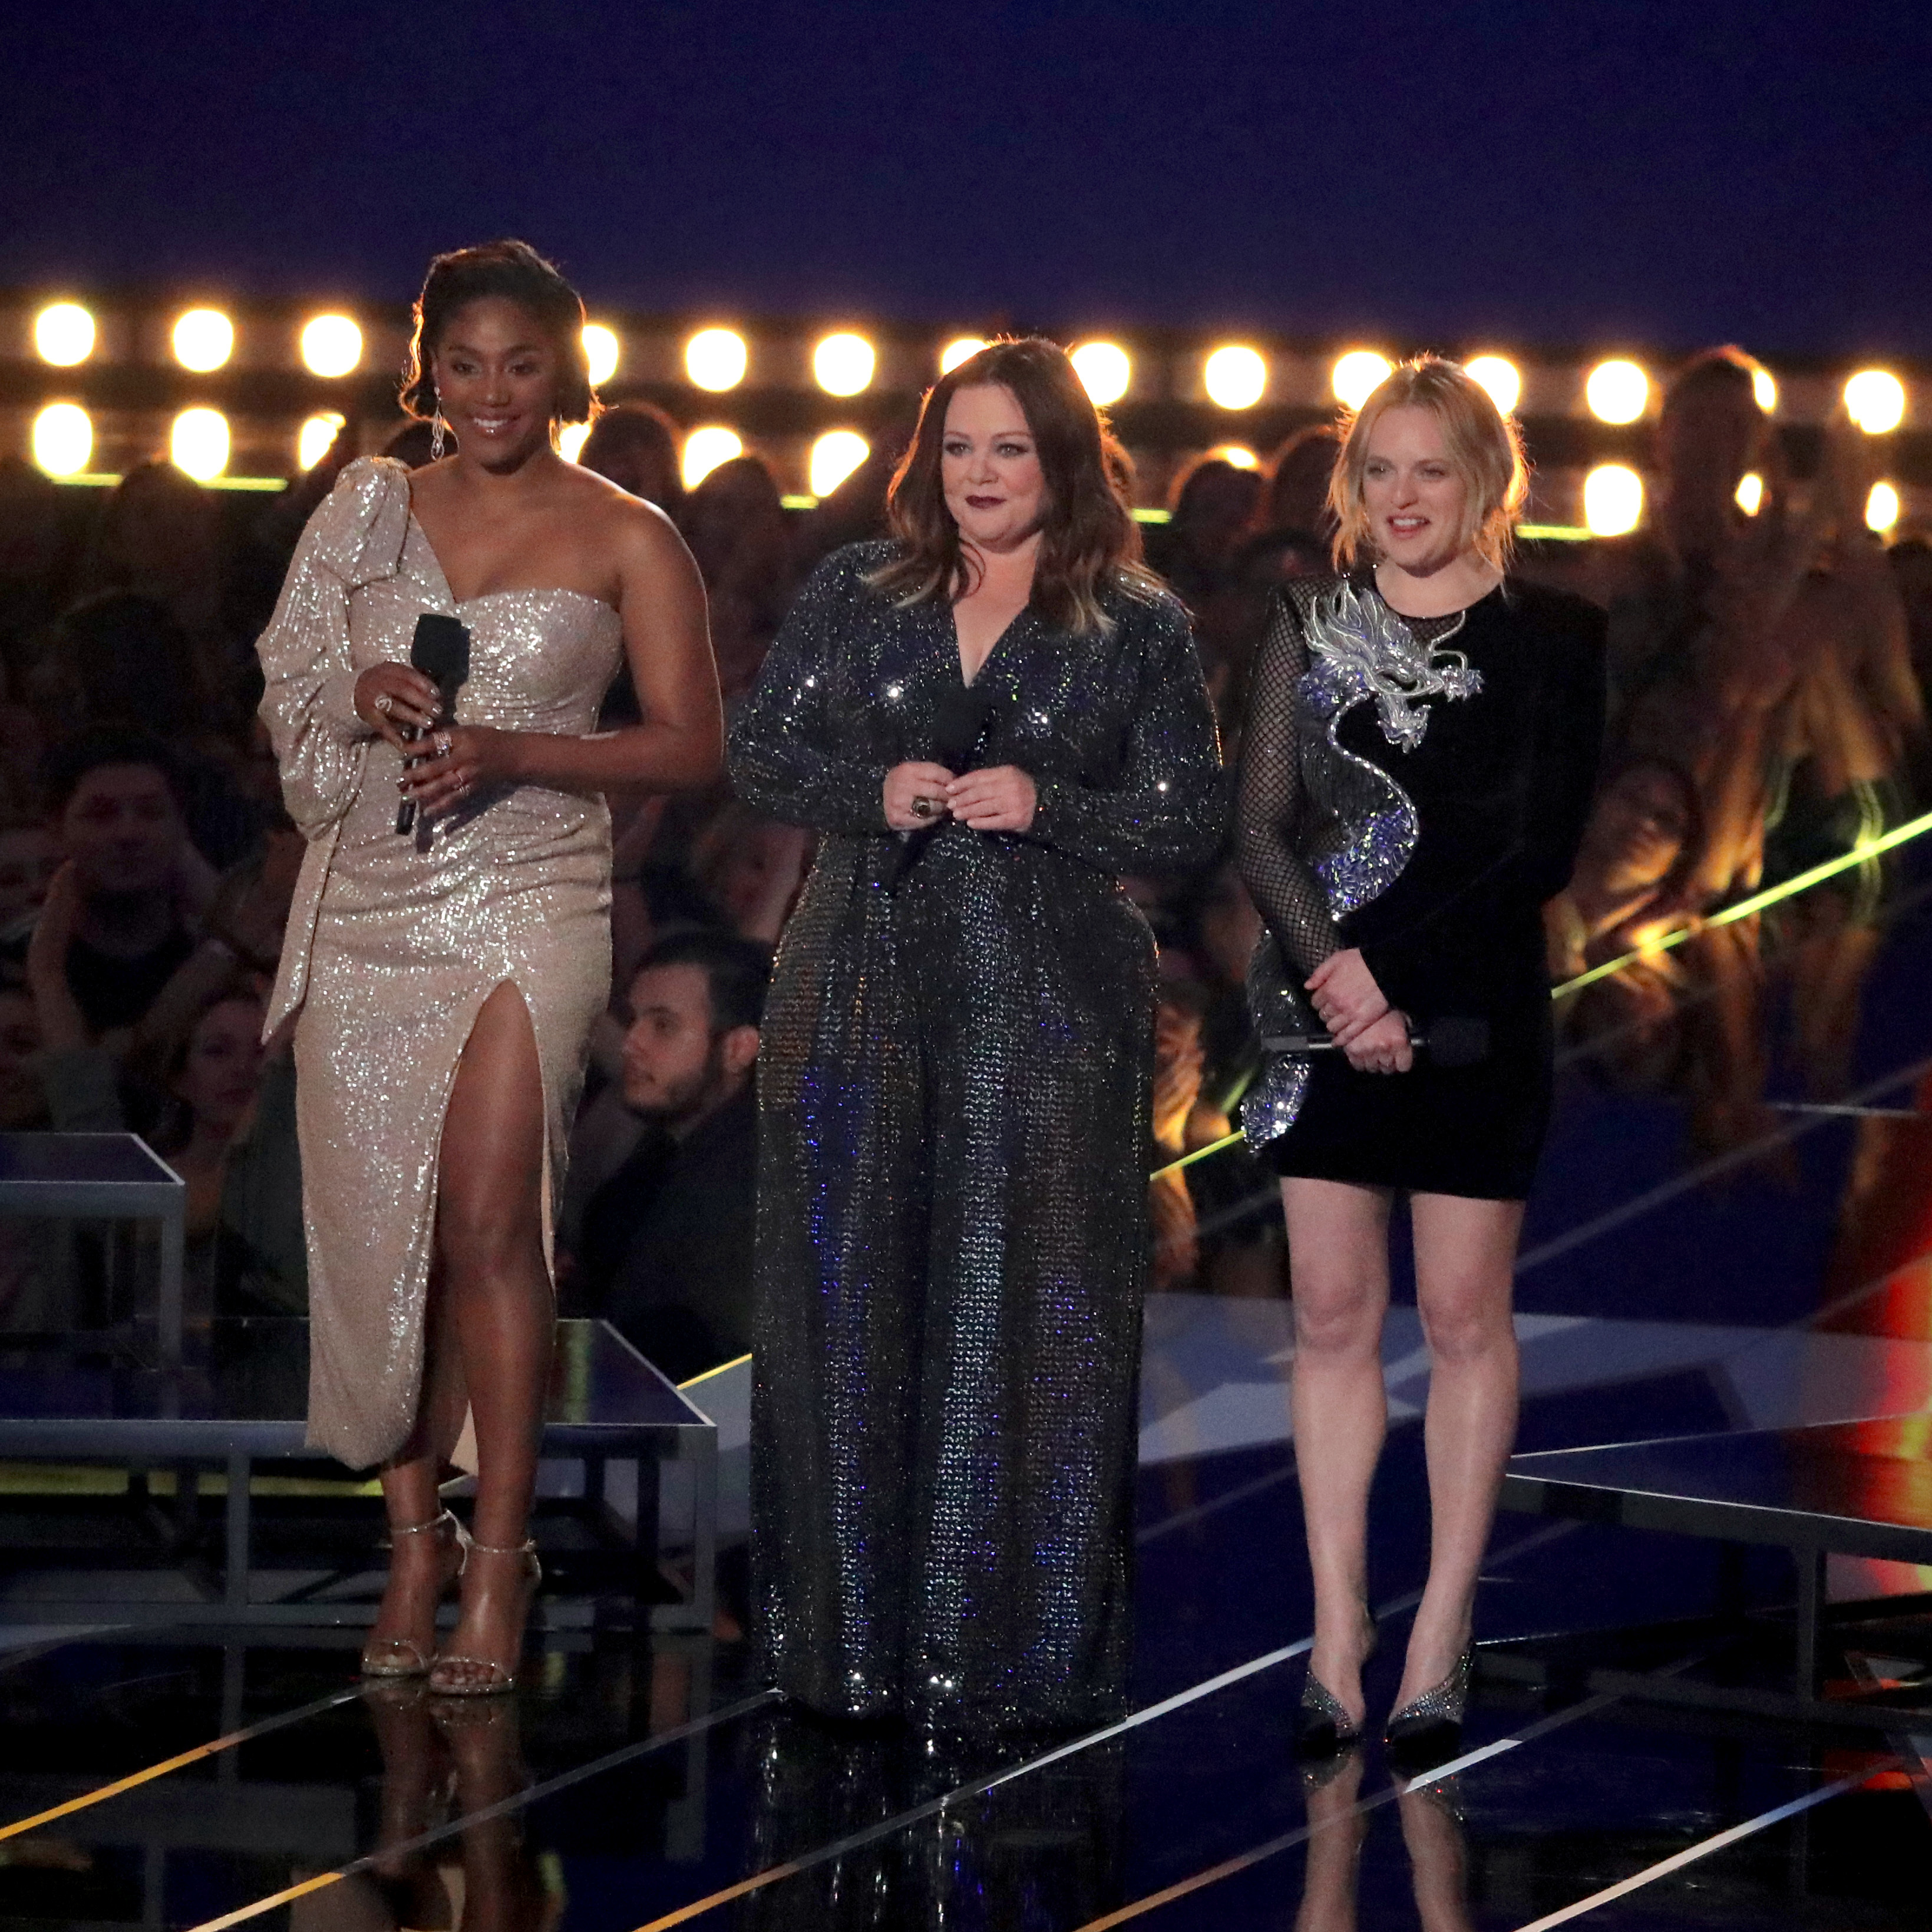 Tiffany Haddish, Melissa McCarthy and Elizabeth Moss appear onstage during the MTV Movie & TV Awards in Santa Monica, California, on June 15, 2019.